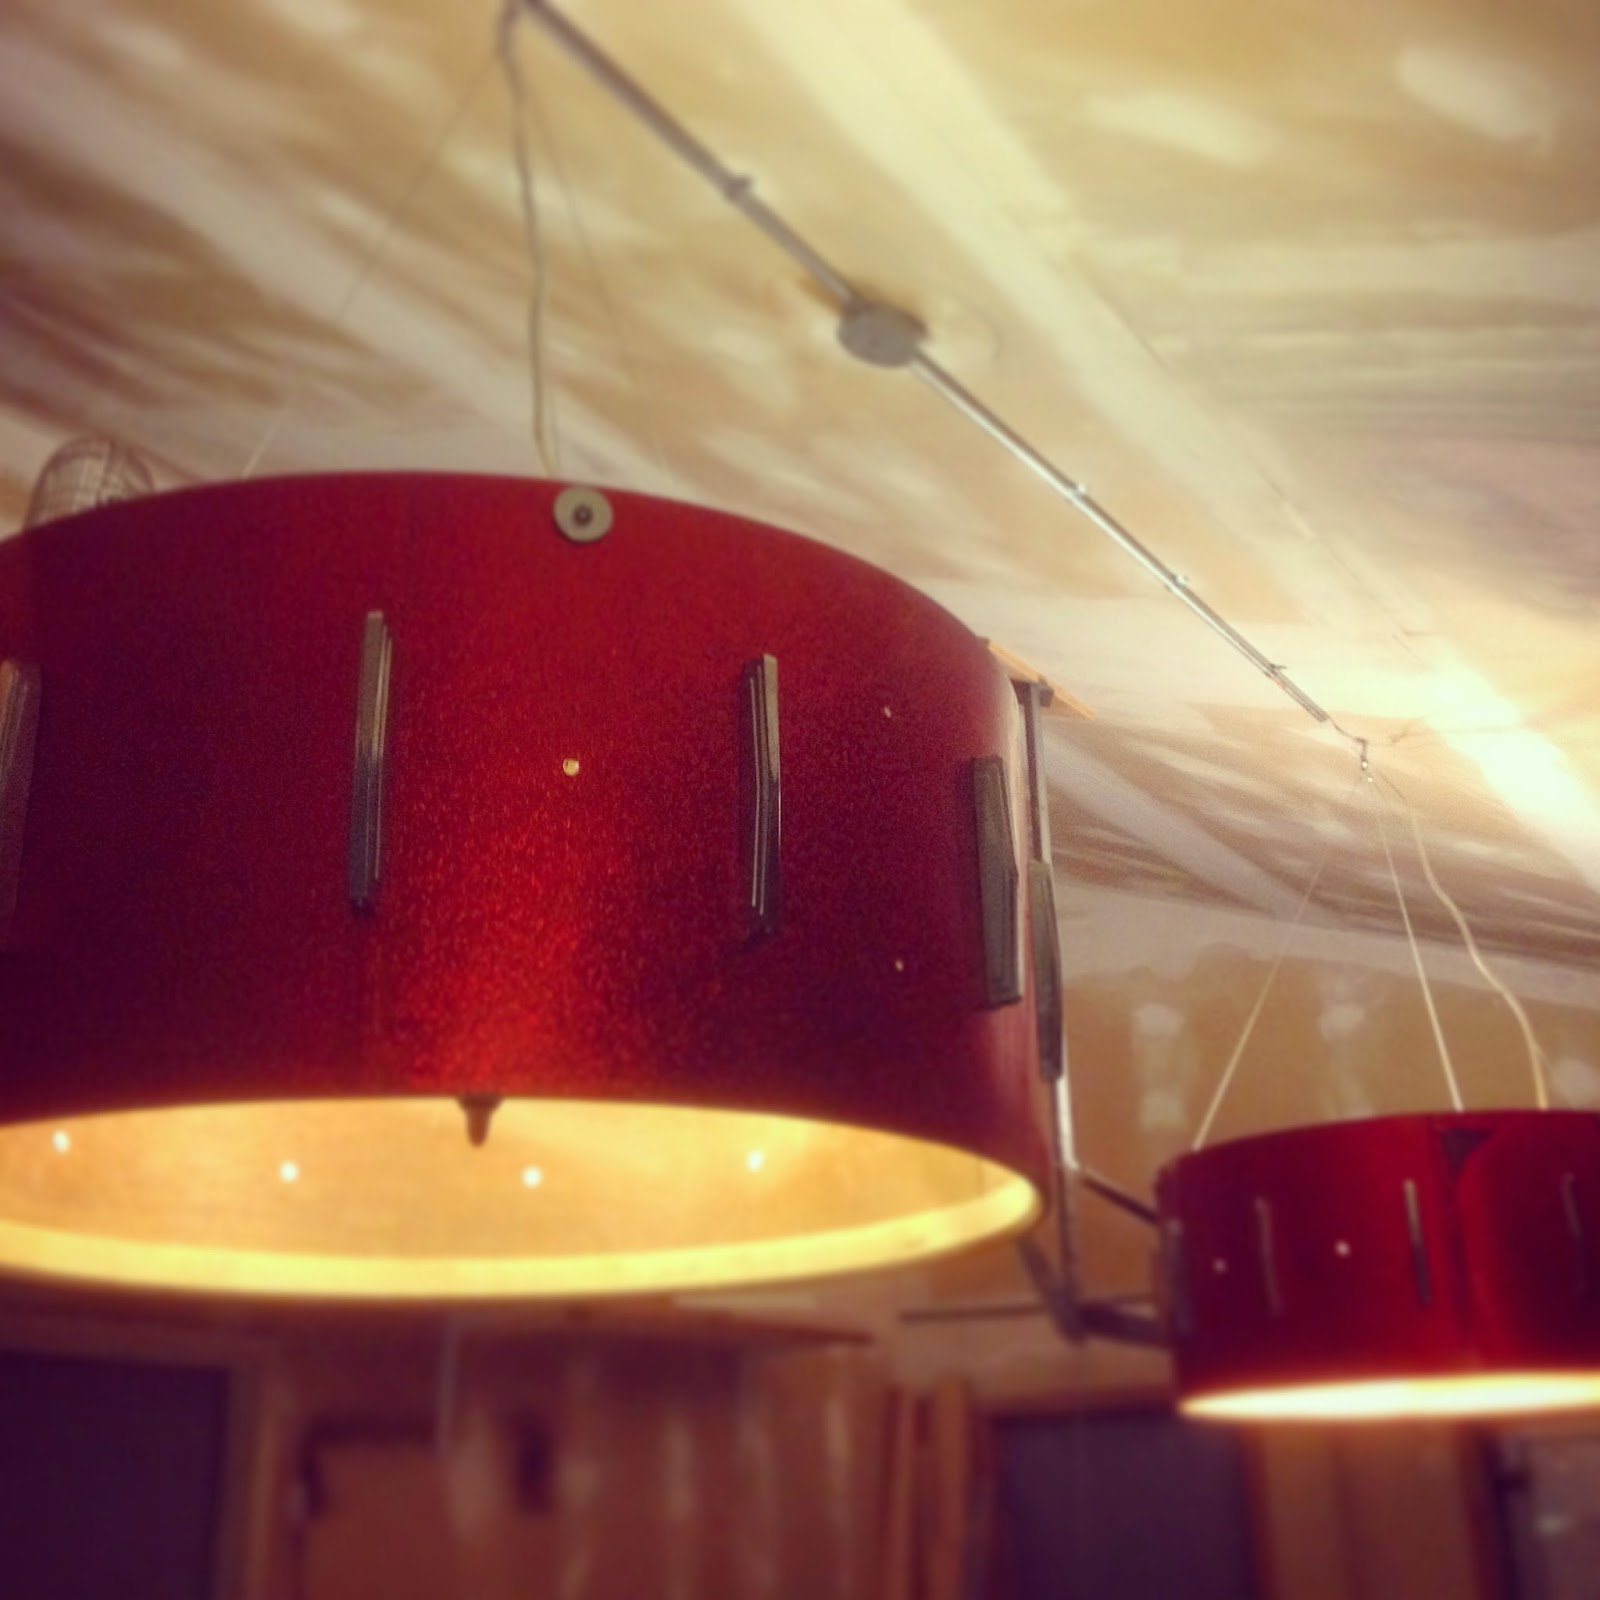 Vintage bass drum chandeliers the wolven house project vintage bass drum chandeliers aloadofball Gallery